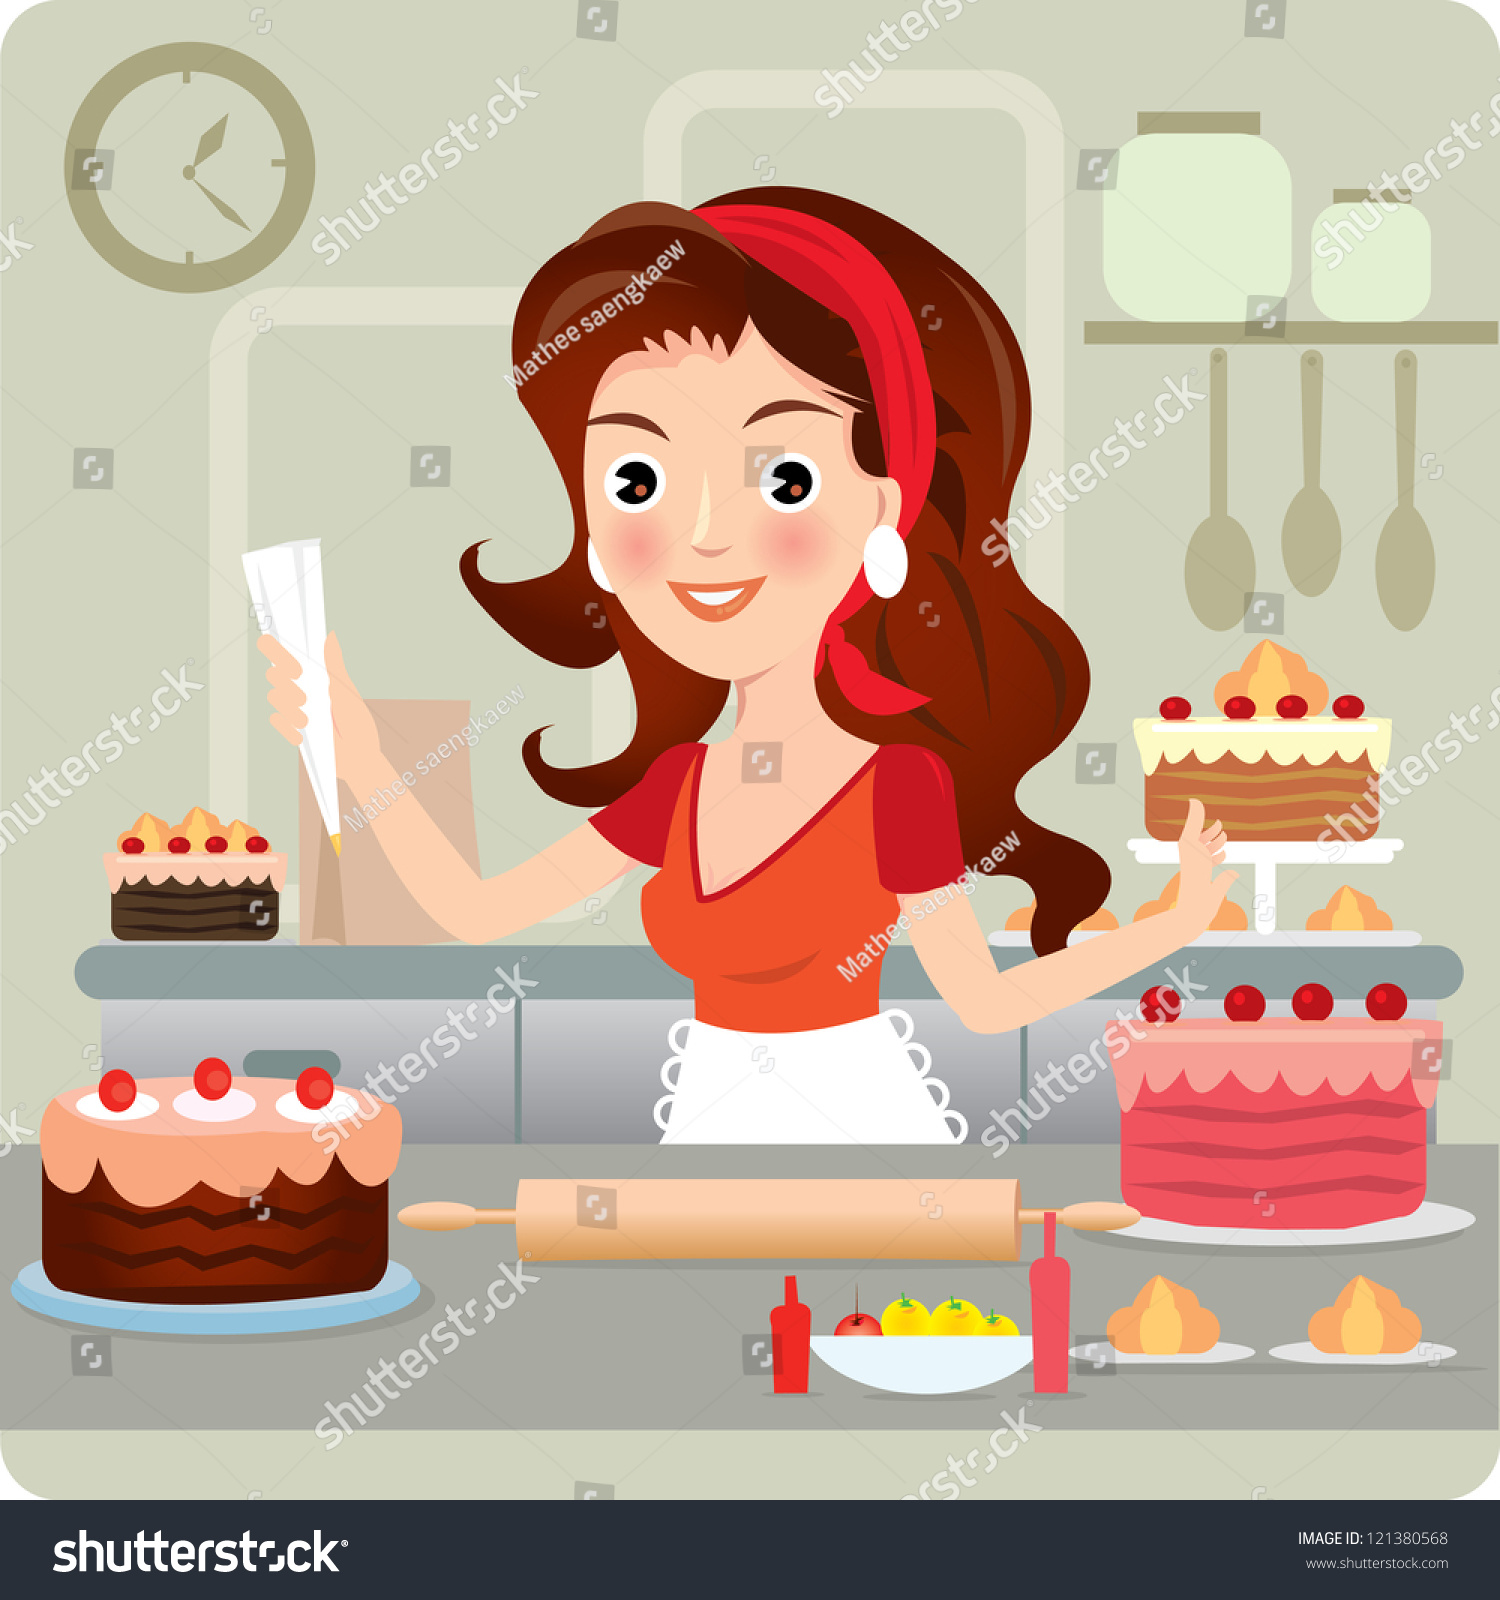 Retro Kitchen Illustration: Woman Baking Cookies In Retro Kitchen. Vector Illustration